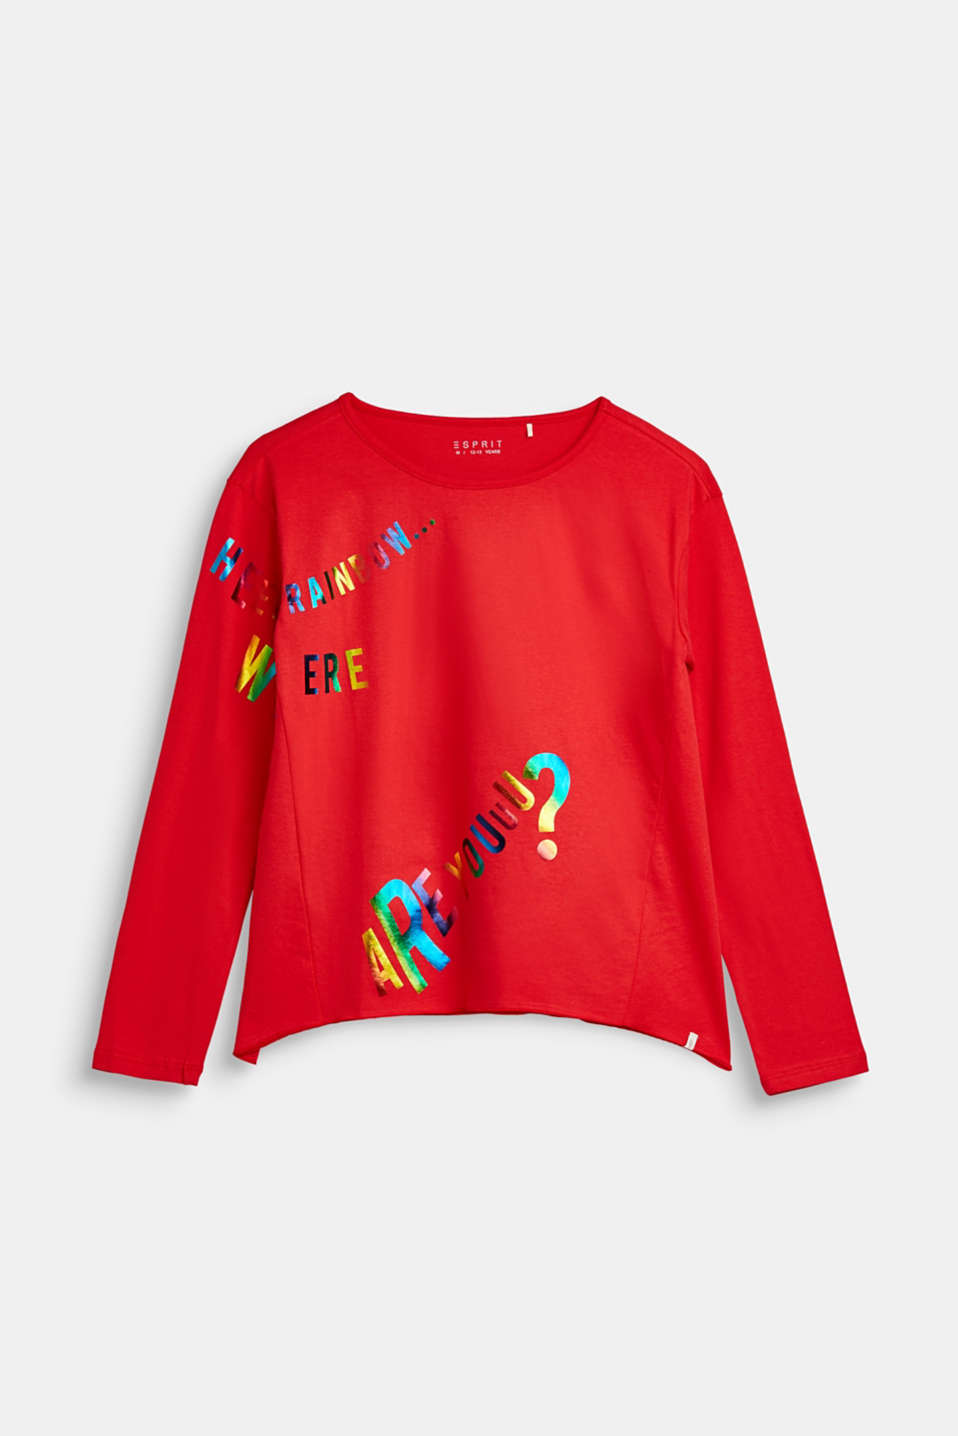 Esprit - Long sleeve top with a rainbow print, 100% cotton